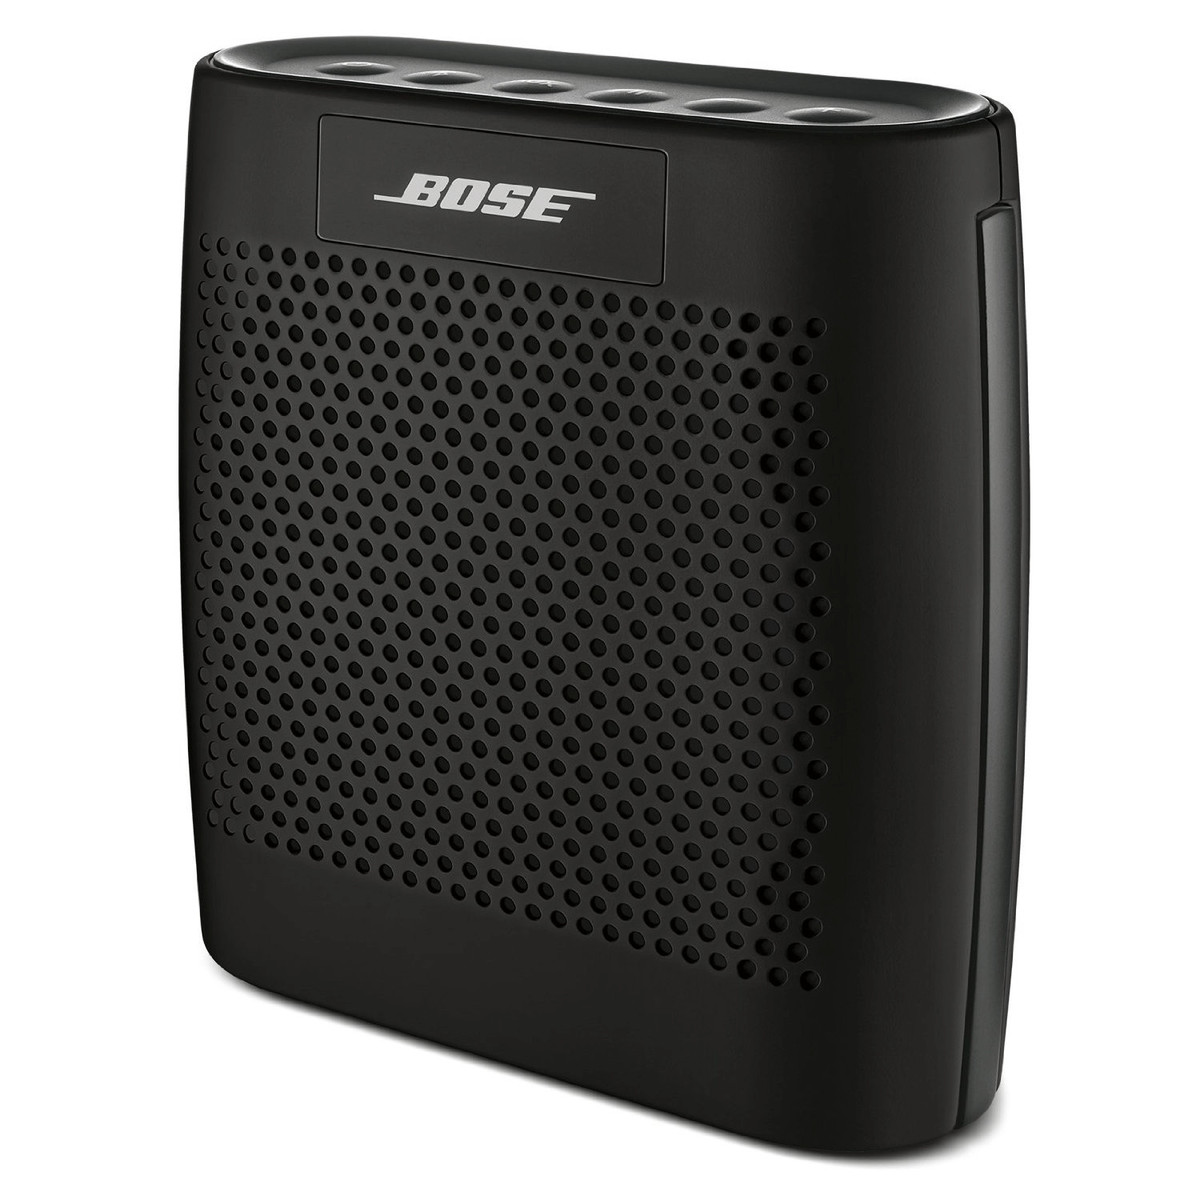 bose soundlink couleur bluetooth haut parleur noir. Black Bedroom Furniture Sets. Home Design Ideas